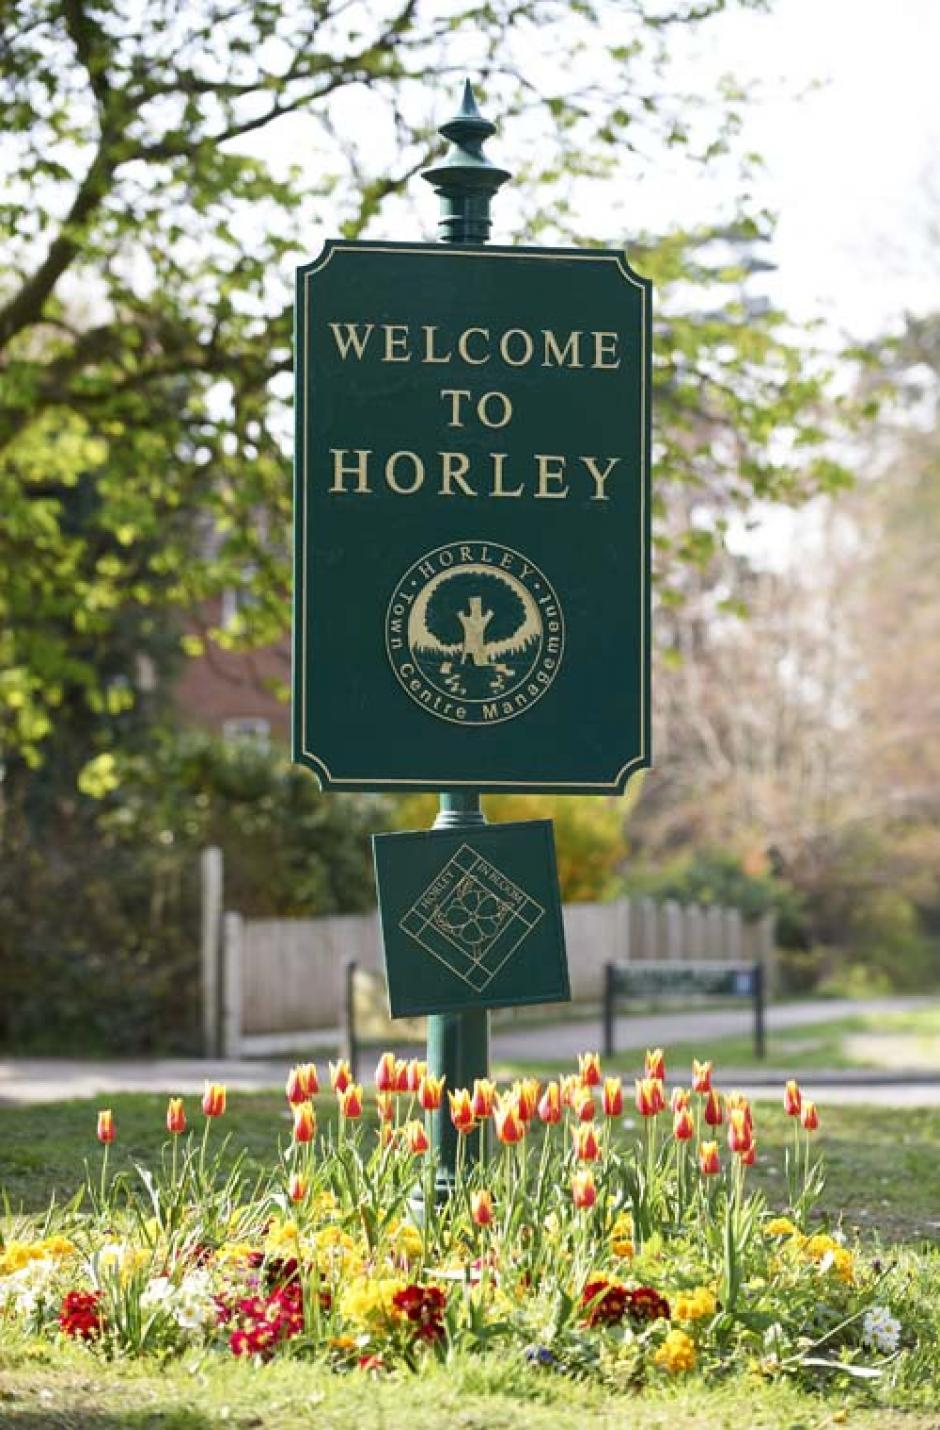 Photo of a sign reading, 'Welcome to Horley'. On the sign is the town emblem, a large tree, surrounded by the text 'Horley Town Centre Management'